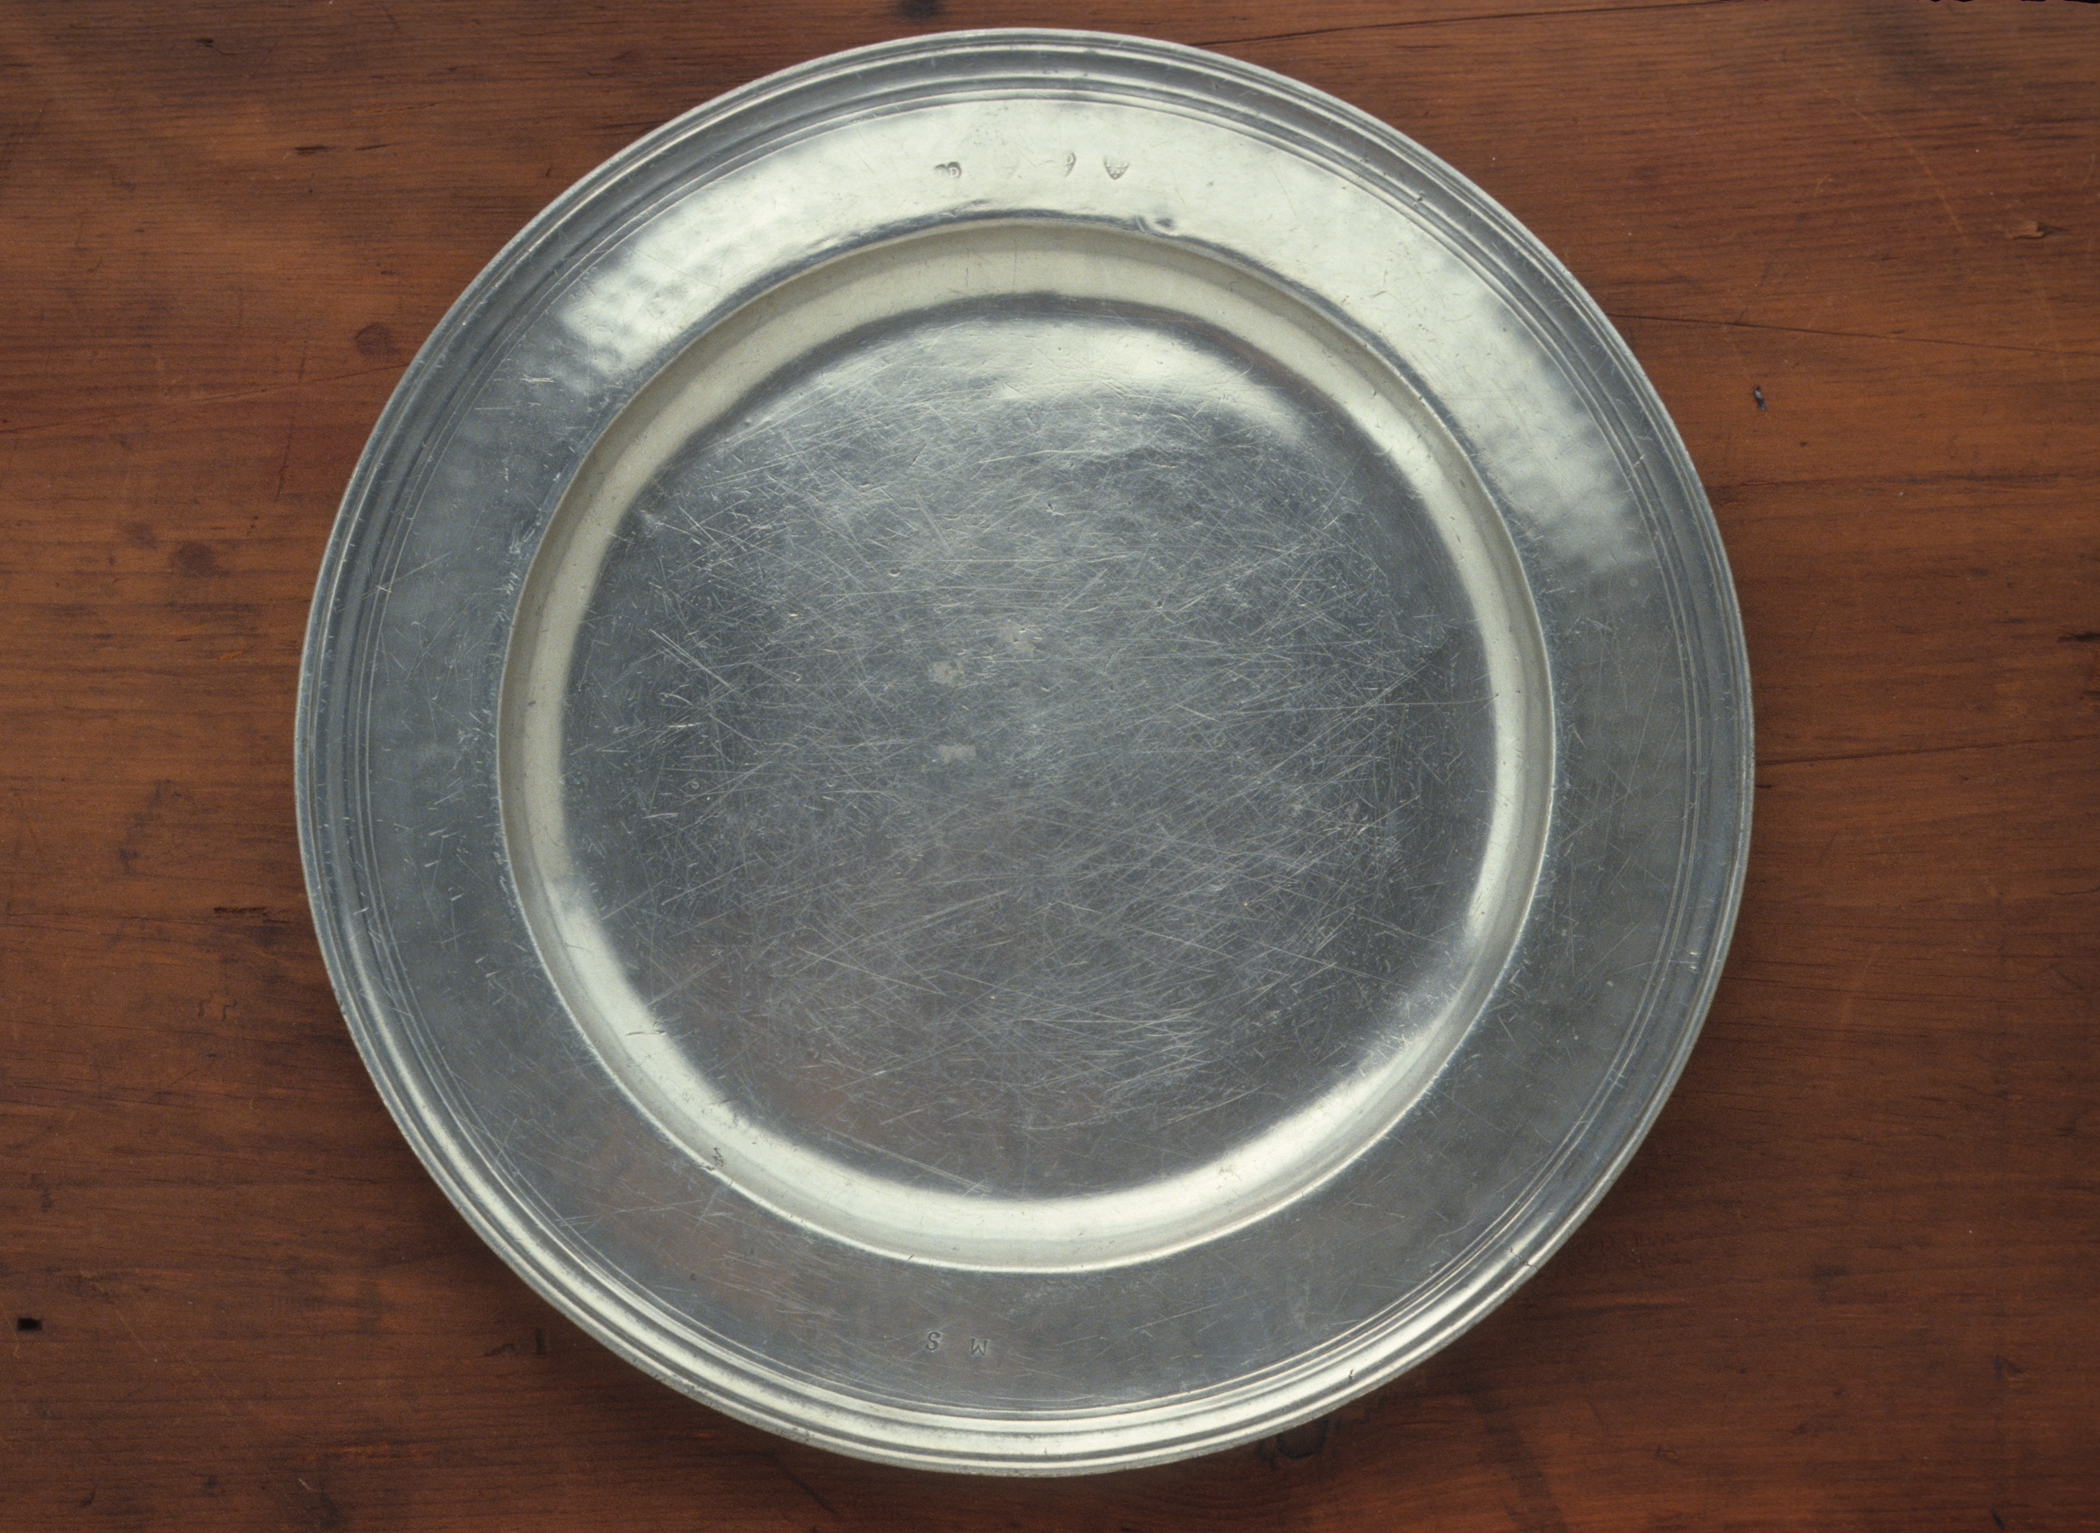 1953.0179 Pewter charger